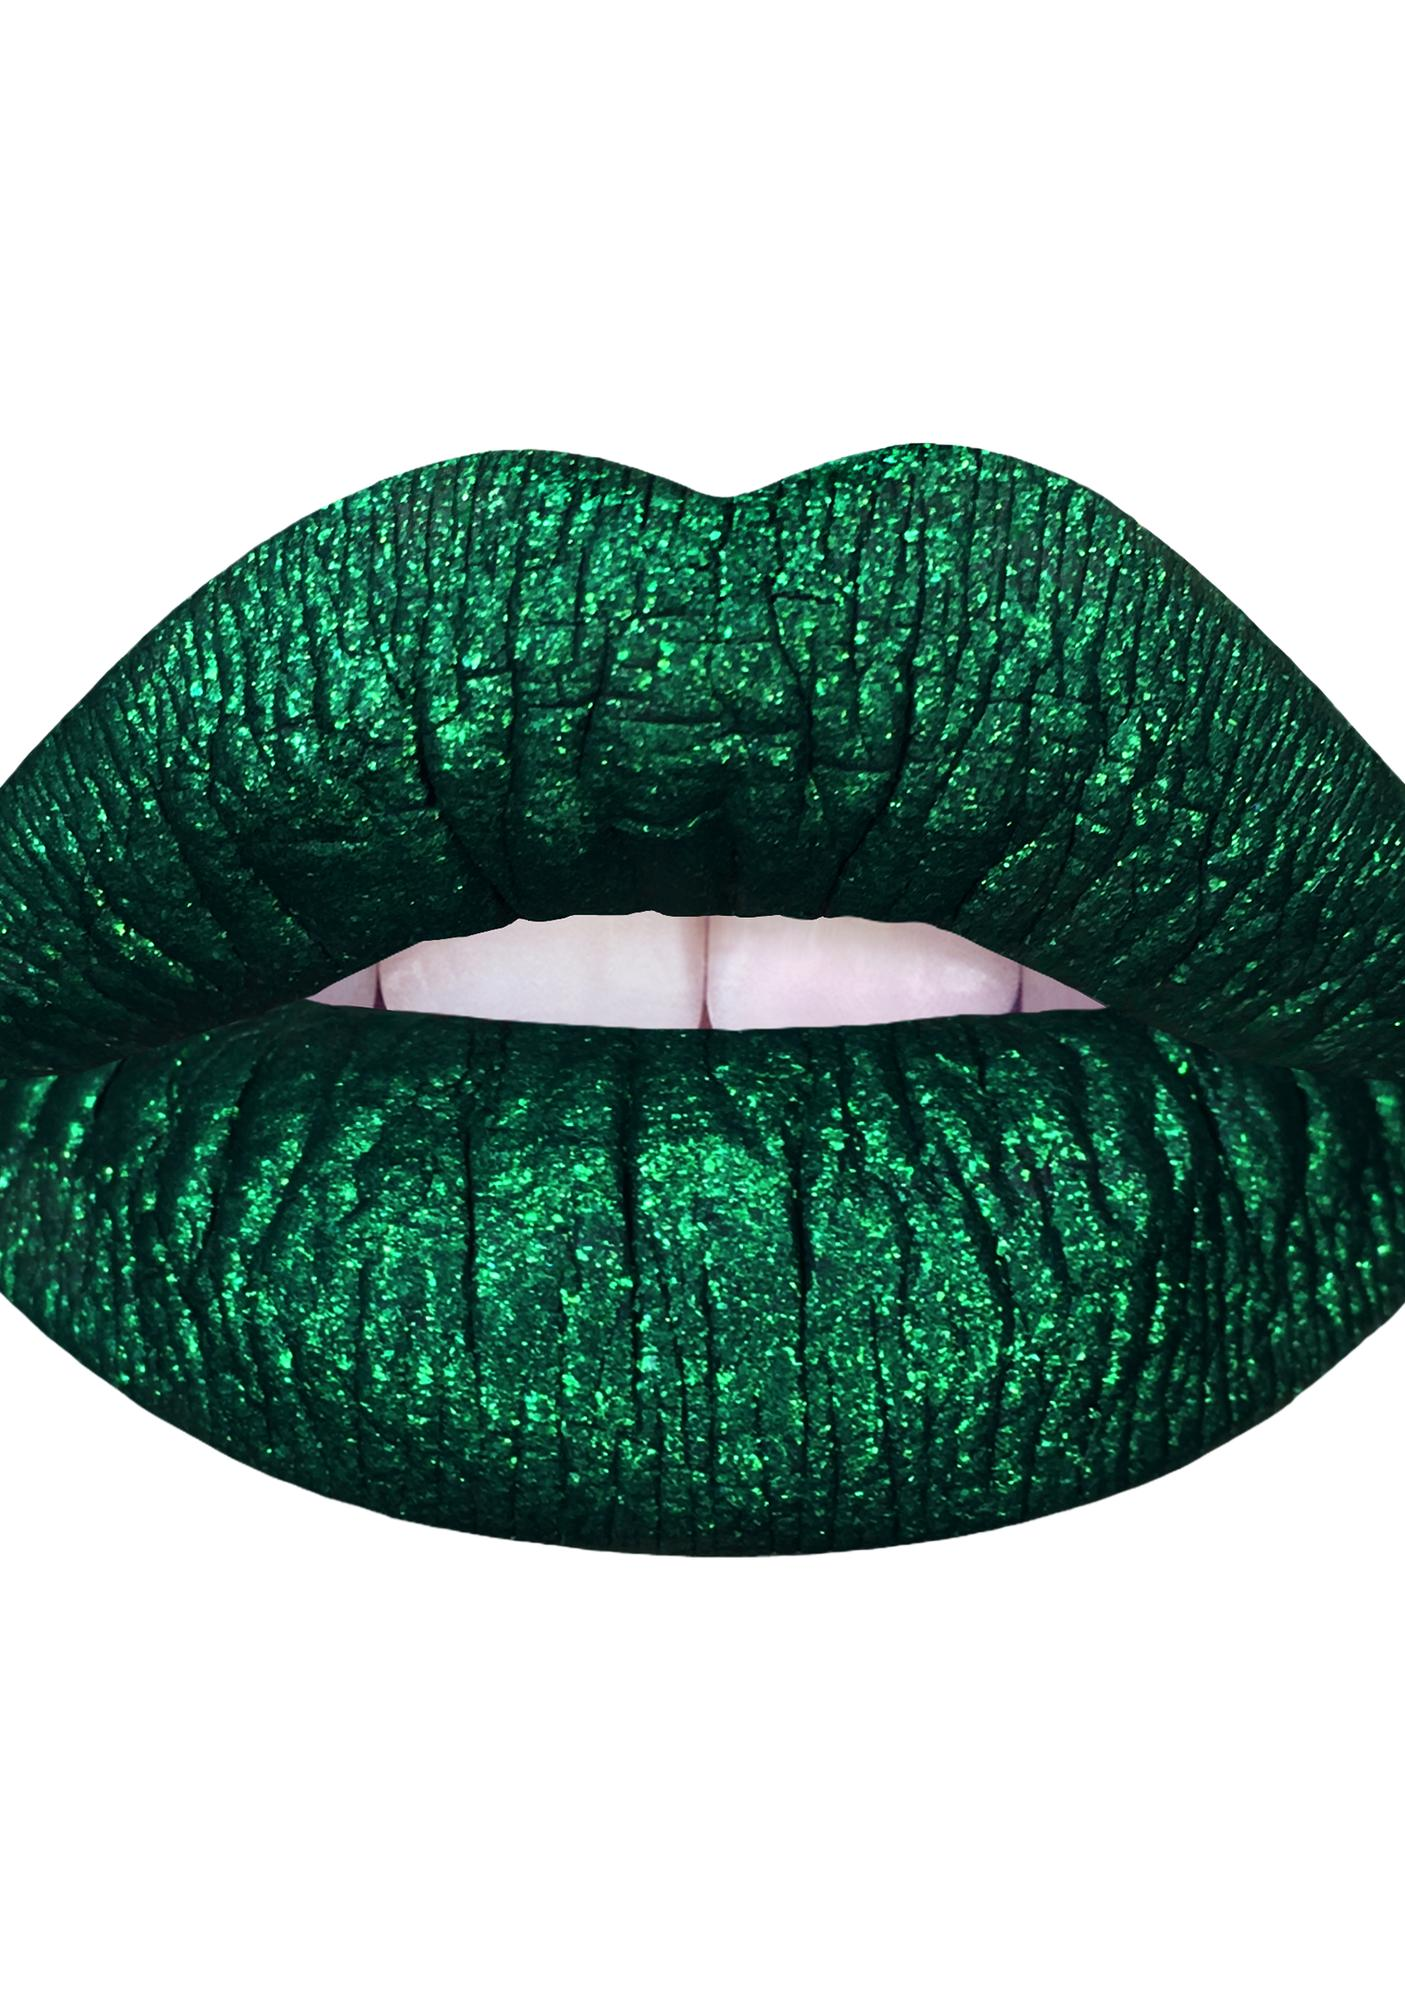 Lime Crime Serpentina Velvetine Liquid Lipstick